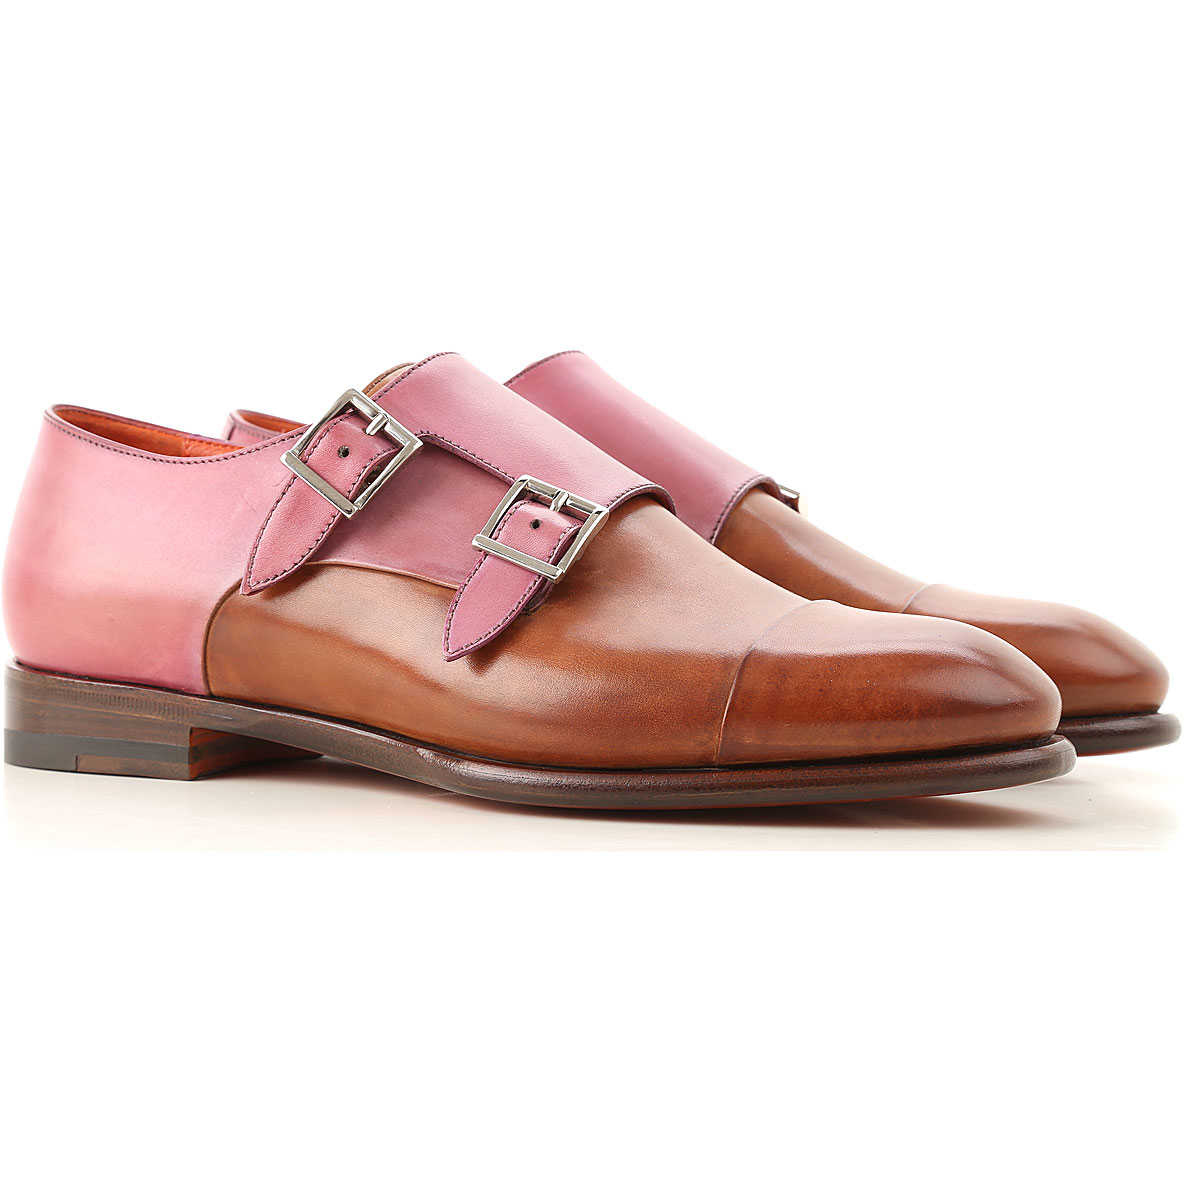 Santoni Oxford Lace up Shoes for Women in Outlet Copper Brown USA - GOOFASH